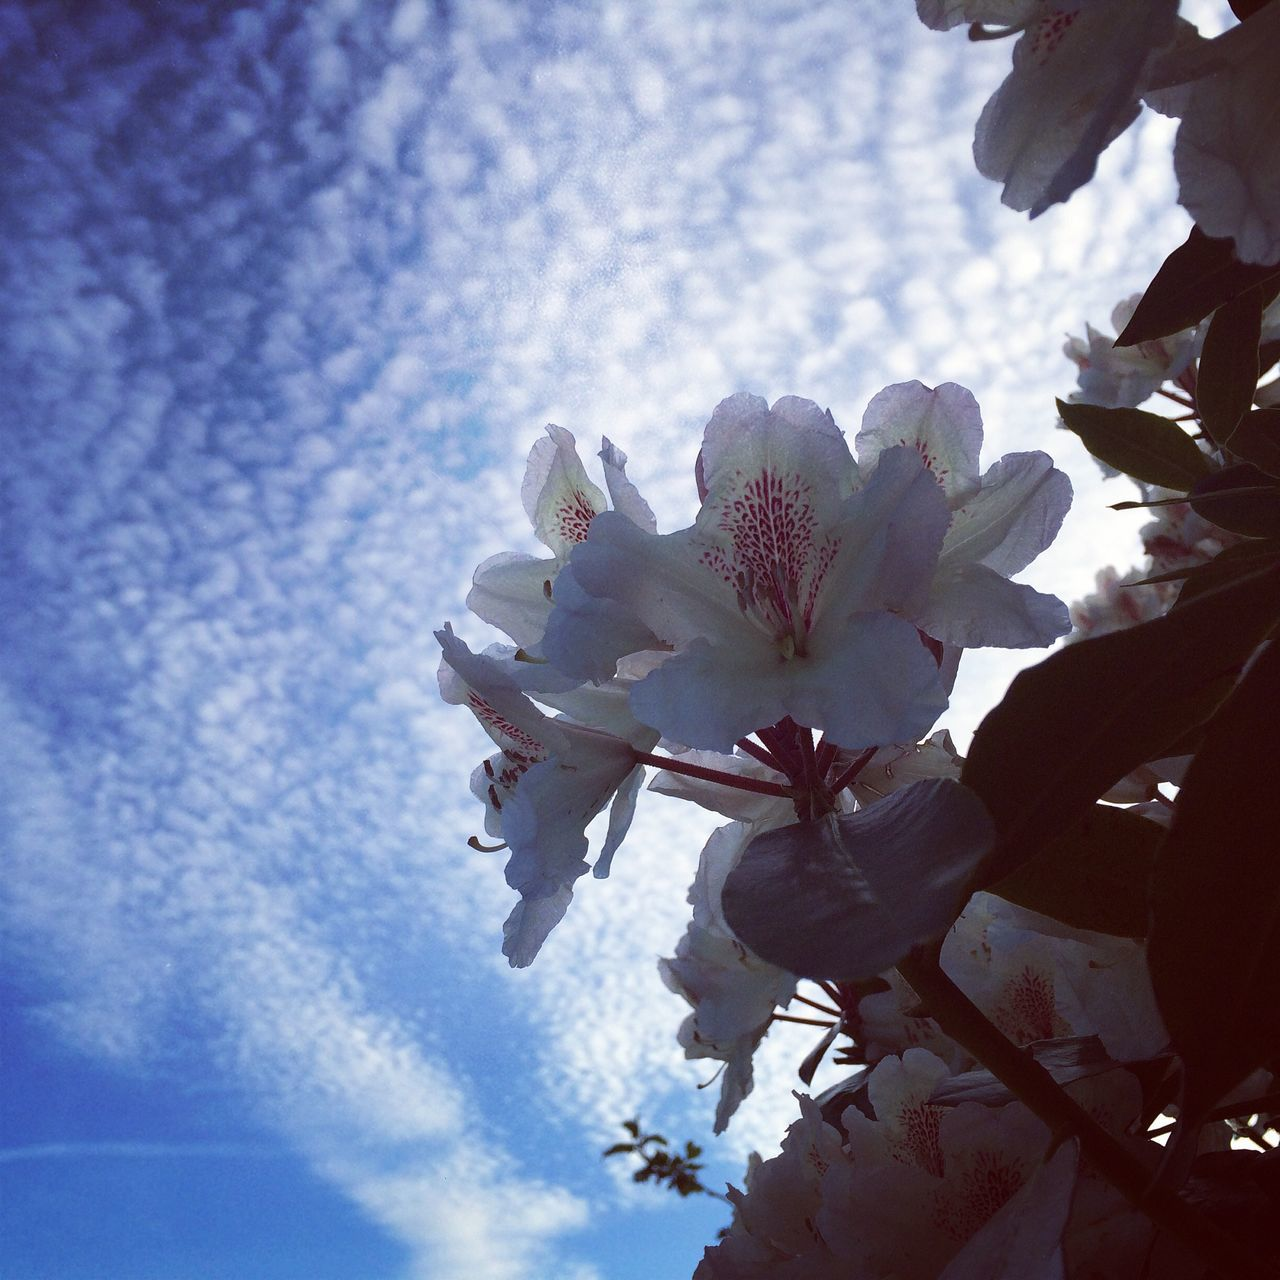 Low Angle View Of White Flowers Growing Against Cloudy Sky